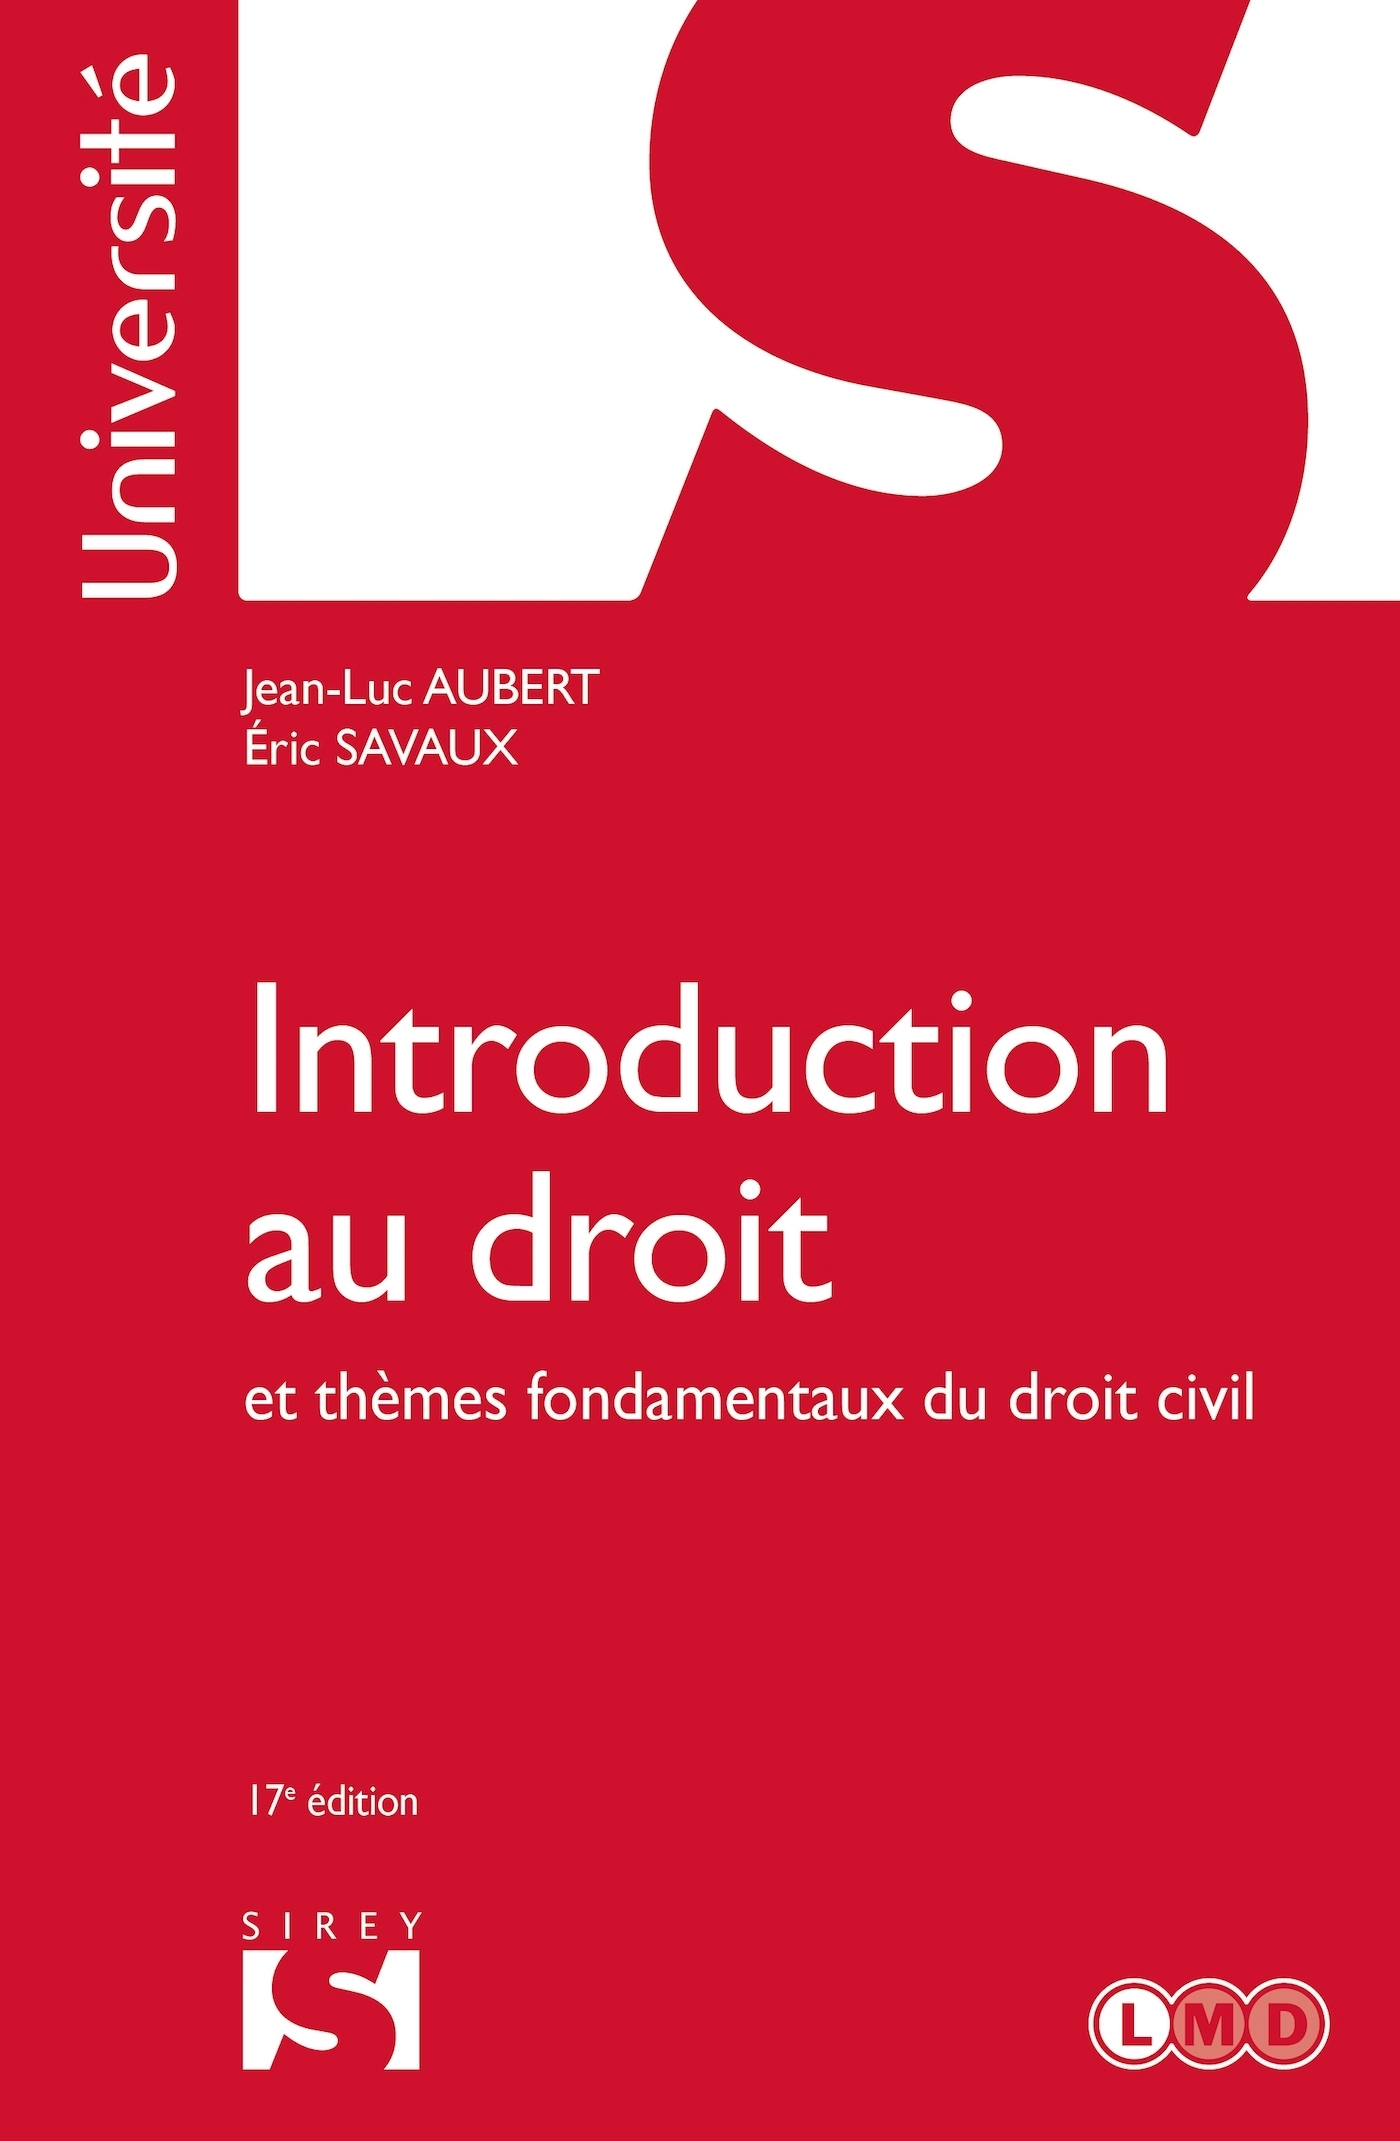 INTRODUCTION AU DROIT ET THEMES FONDAMENTAUX DU DROIT CIVIL - 17E ED.